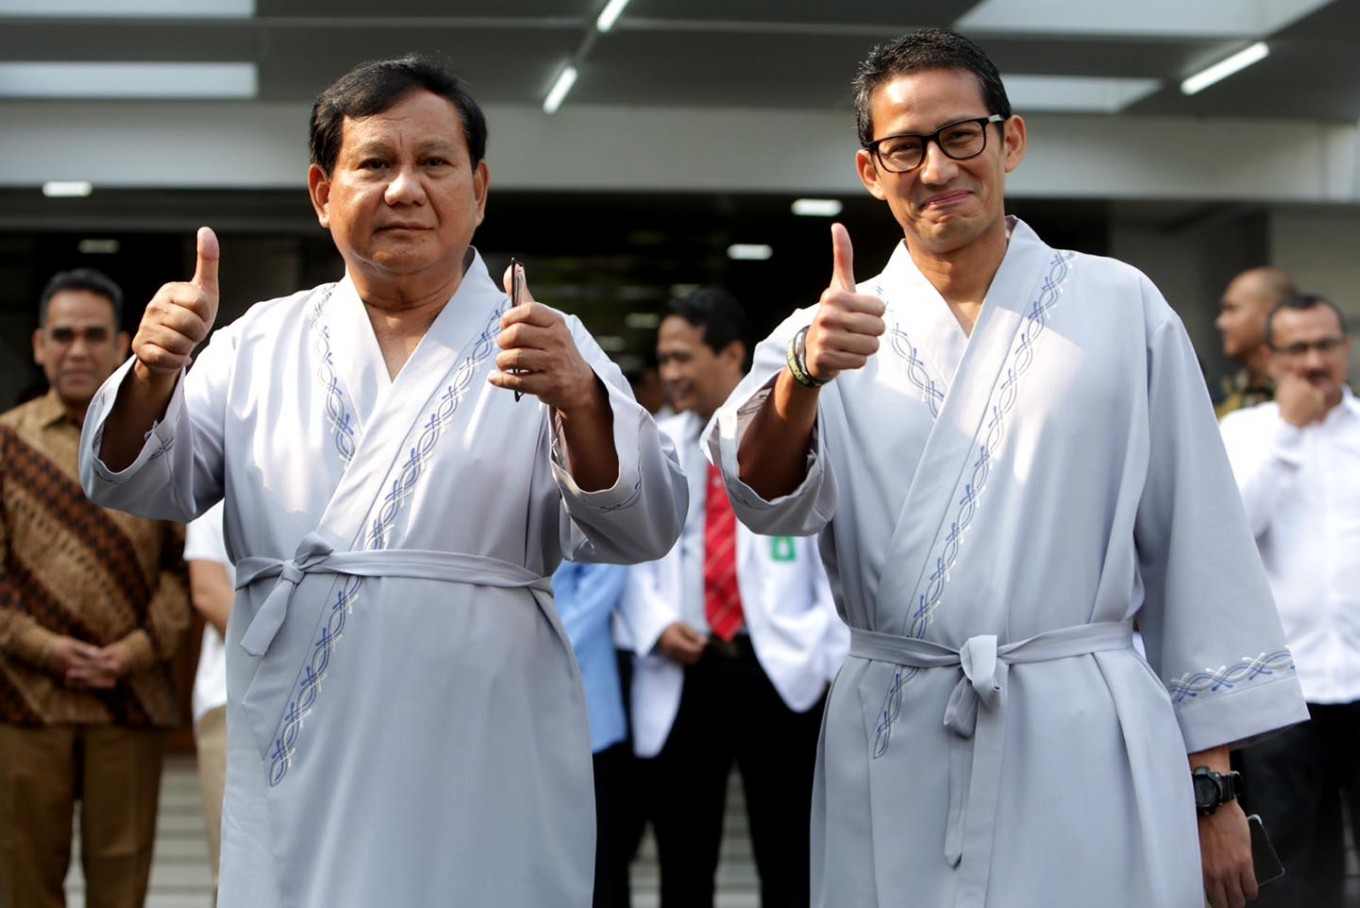 Salient points in Prabowo-Sandiaga's plans for Fair and Prosperous Indonesia